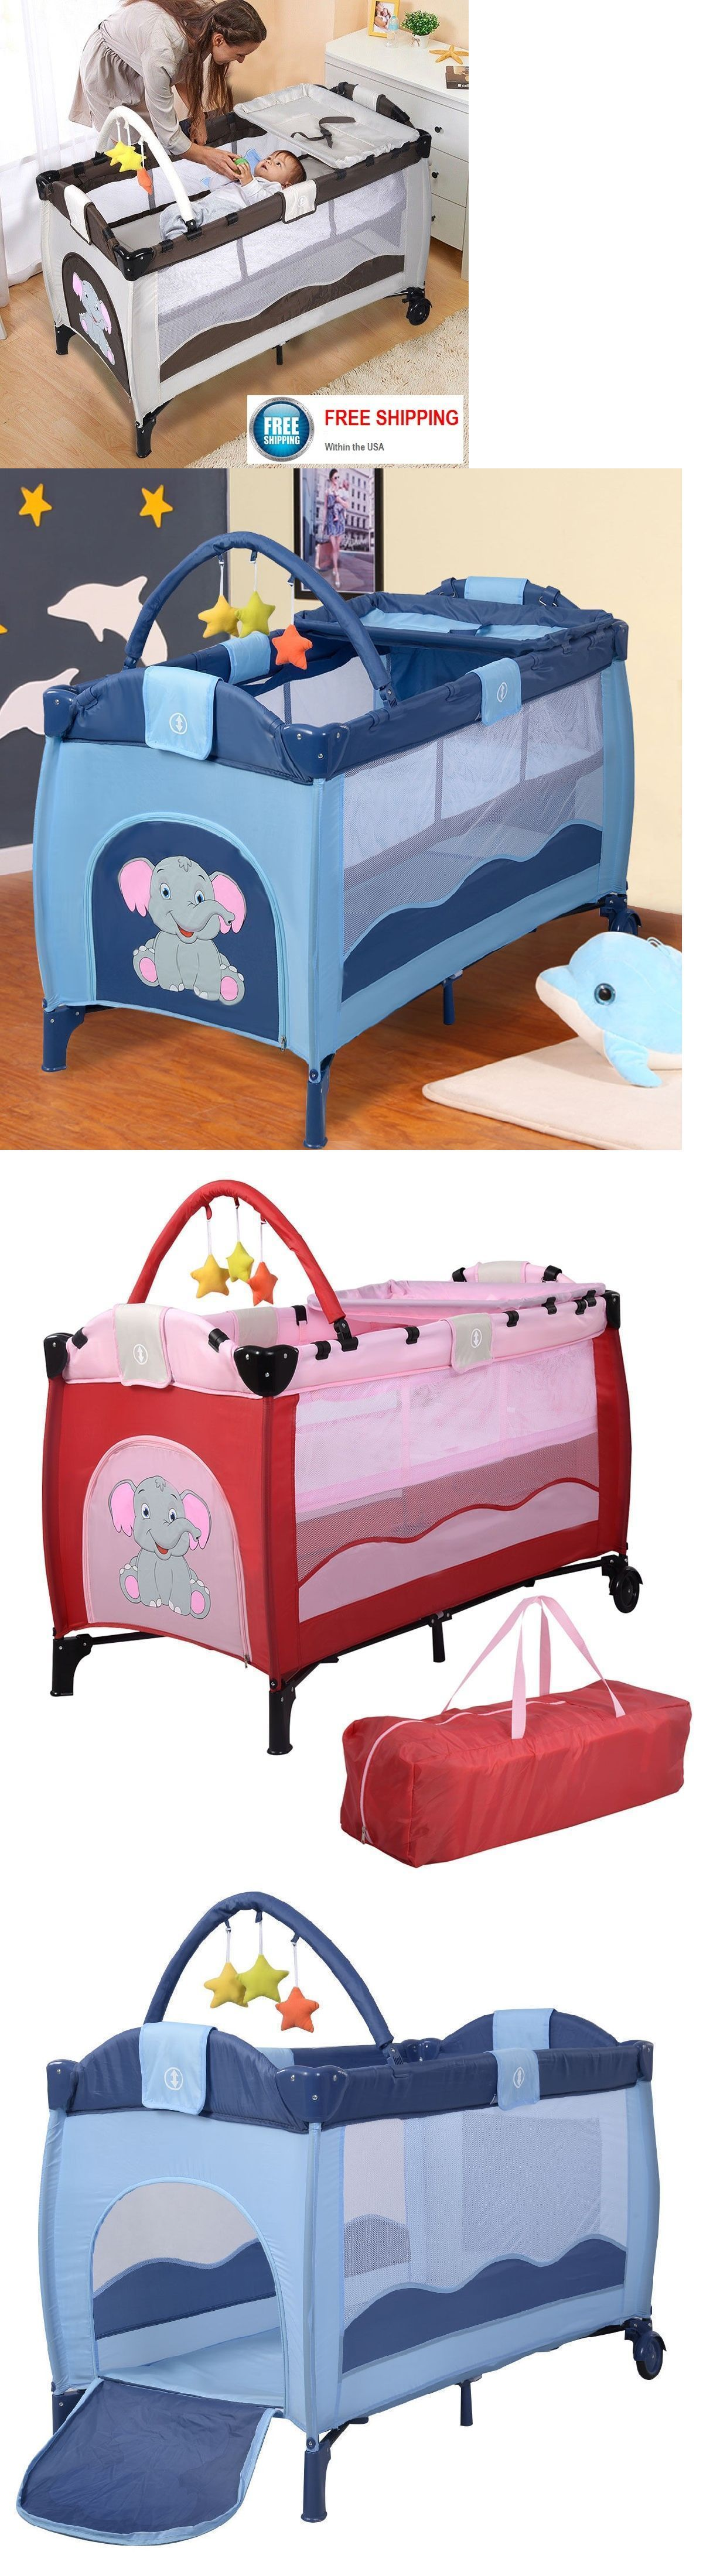 cribs 2985 portable baby crib bassinet playpen travel folding bed